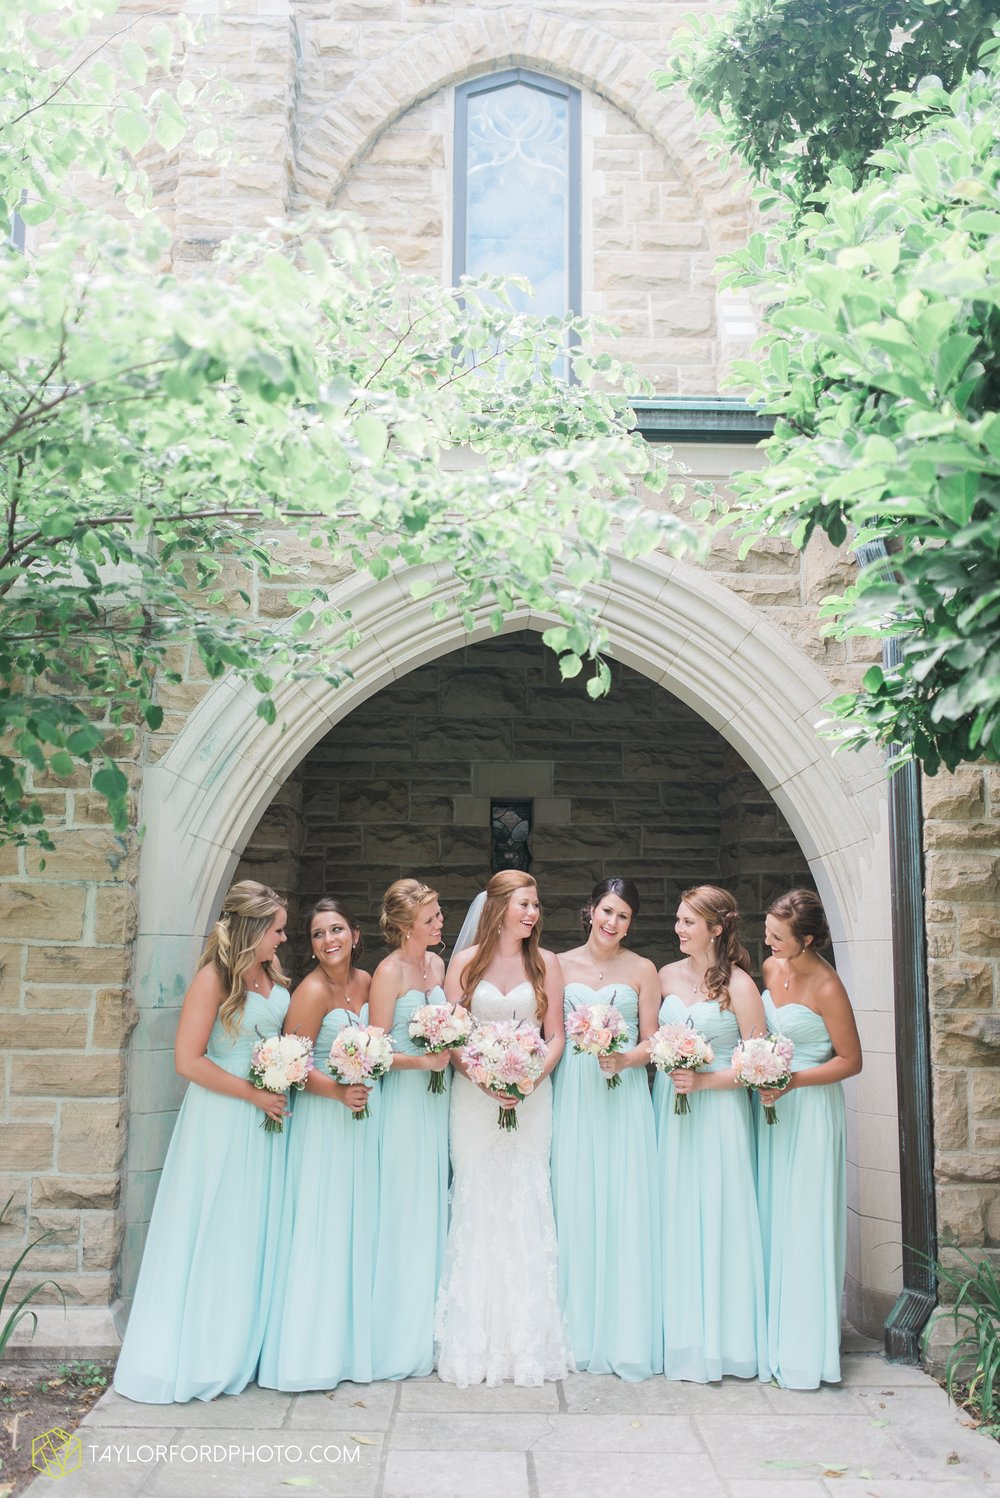 ford-wayne-indiana-trinity-lutheran-church-becca-connor-bonnell-taylor-ford-wedding-photography_0017.jpg